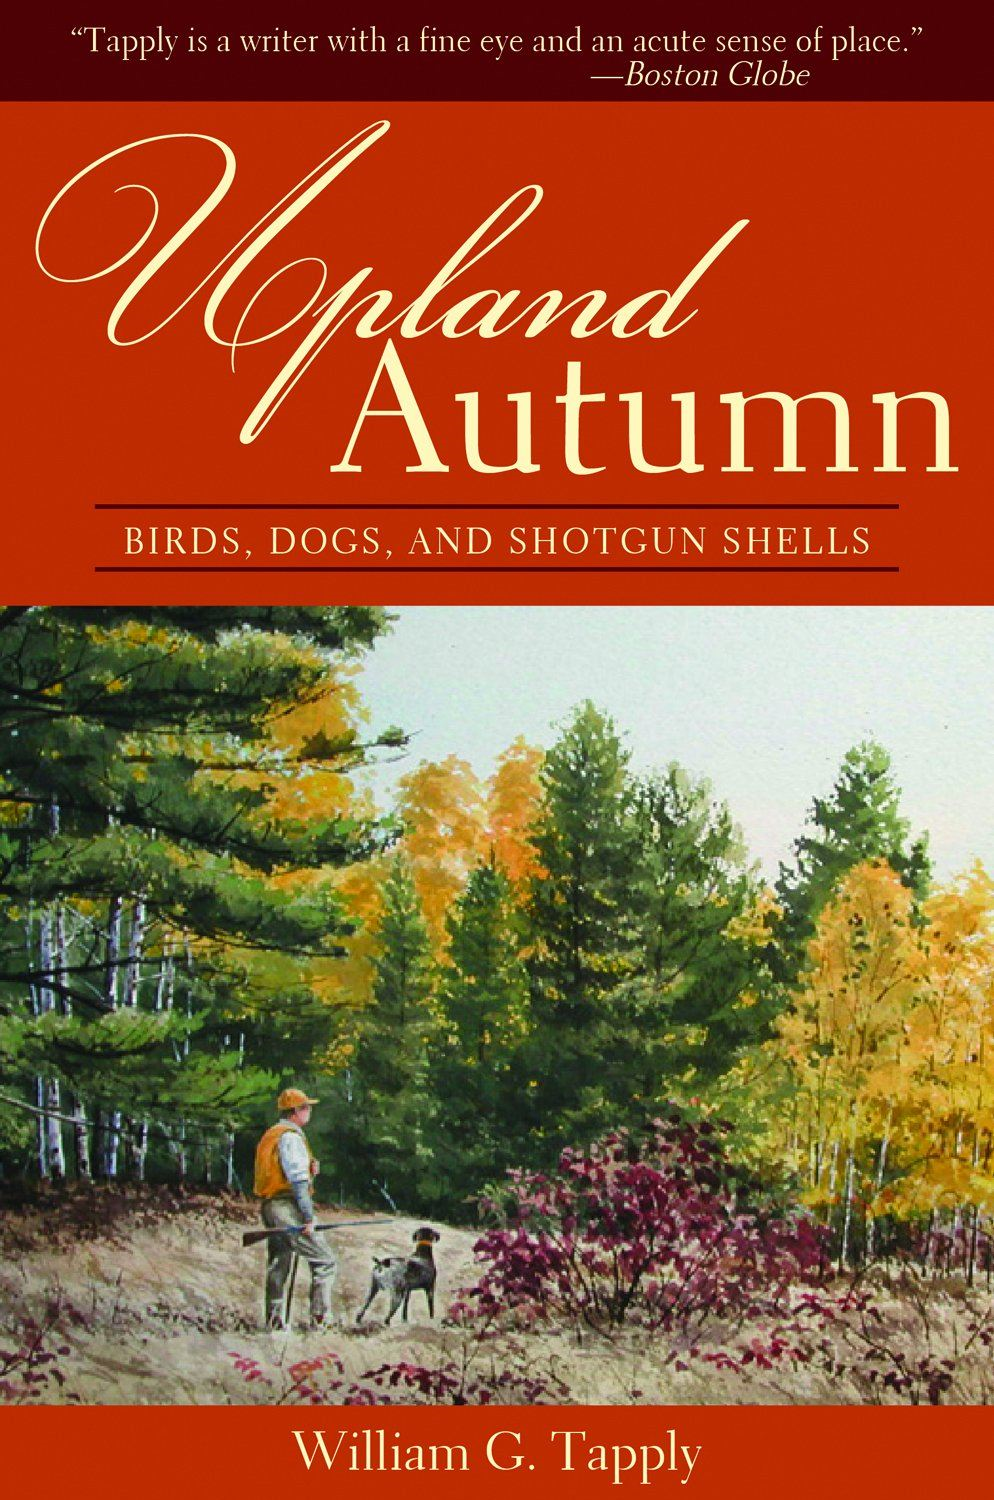 Upland Autumn: Birds, Dogs, and Shotgun Shells By: William G. Tapply